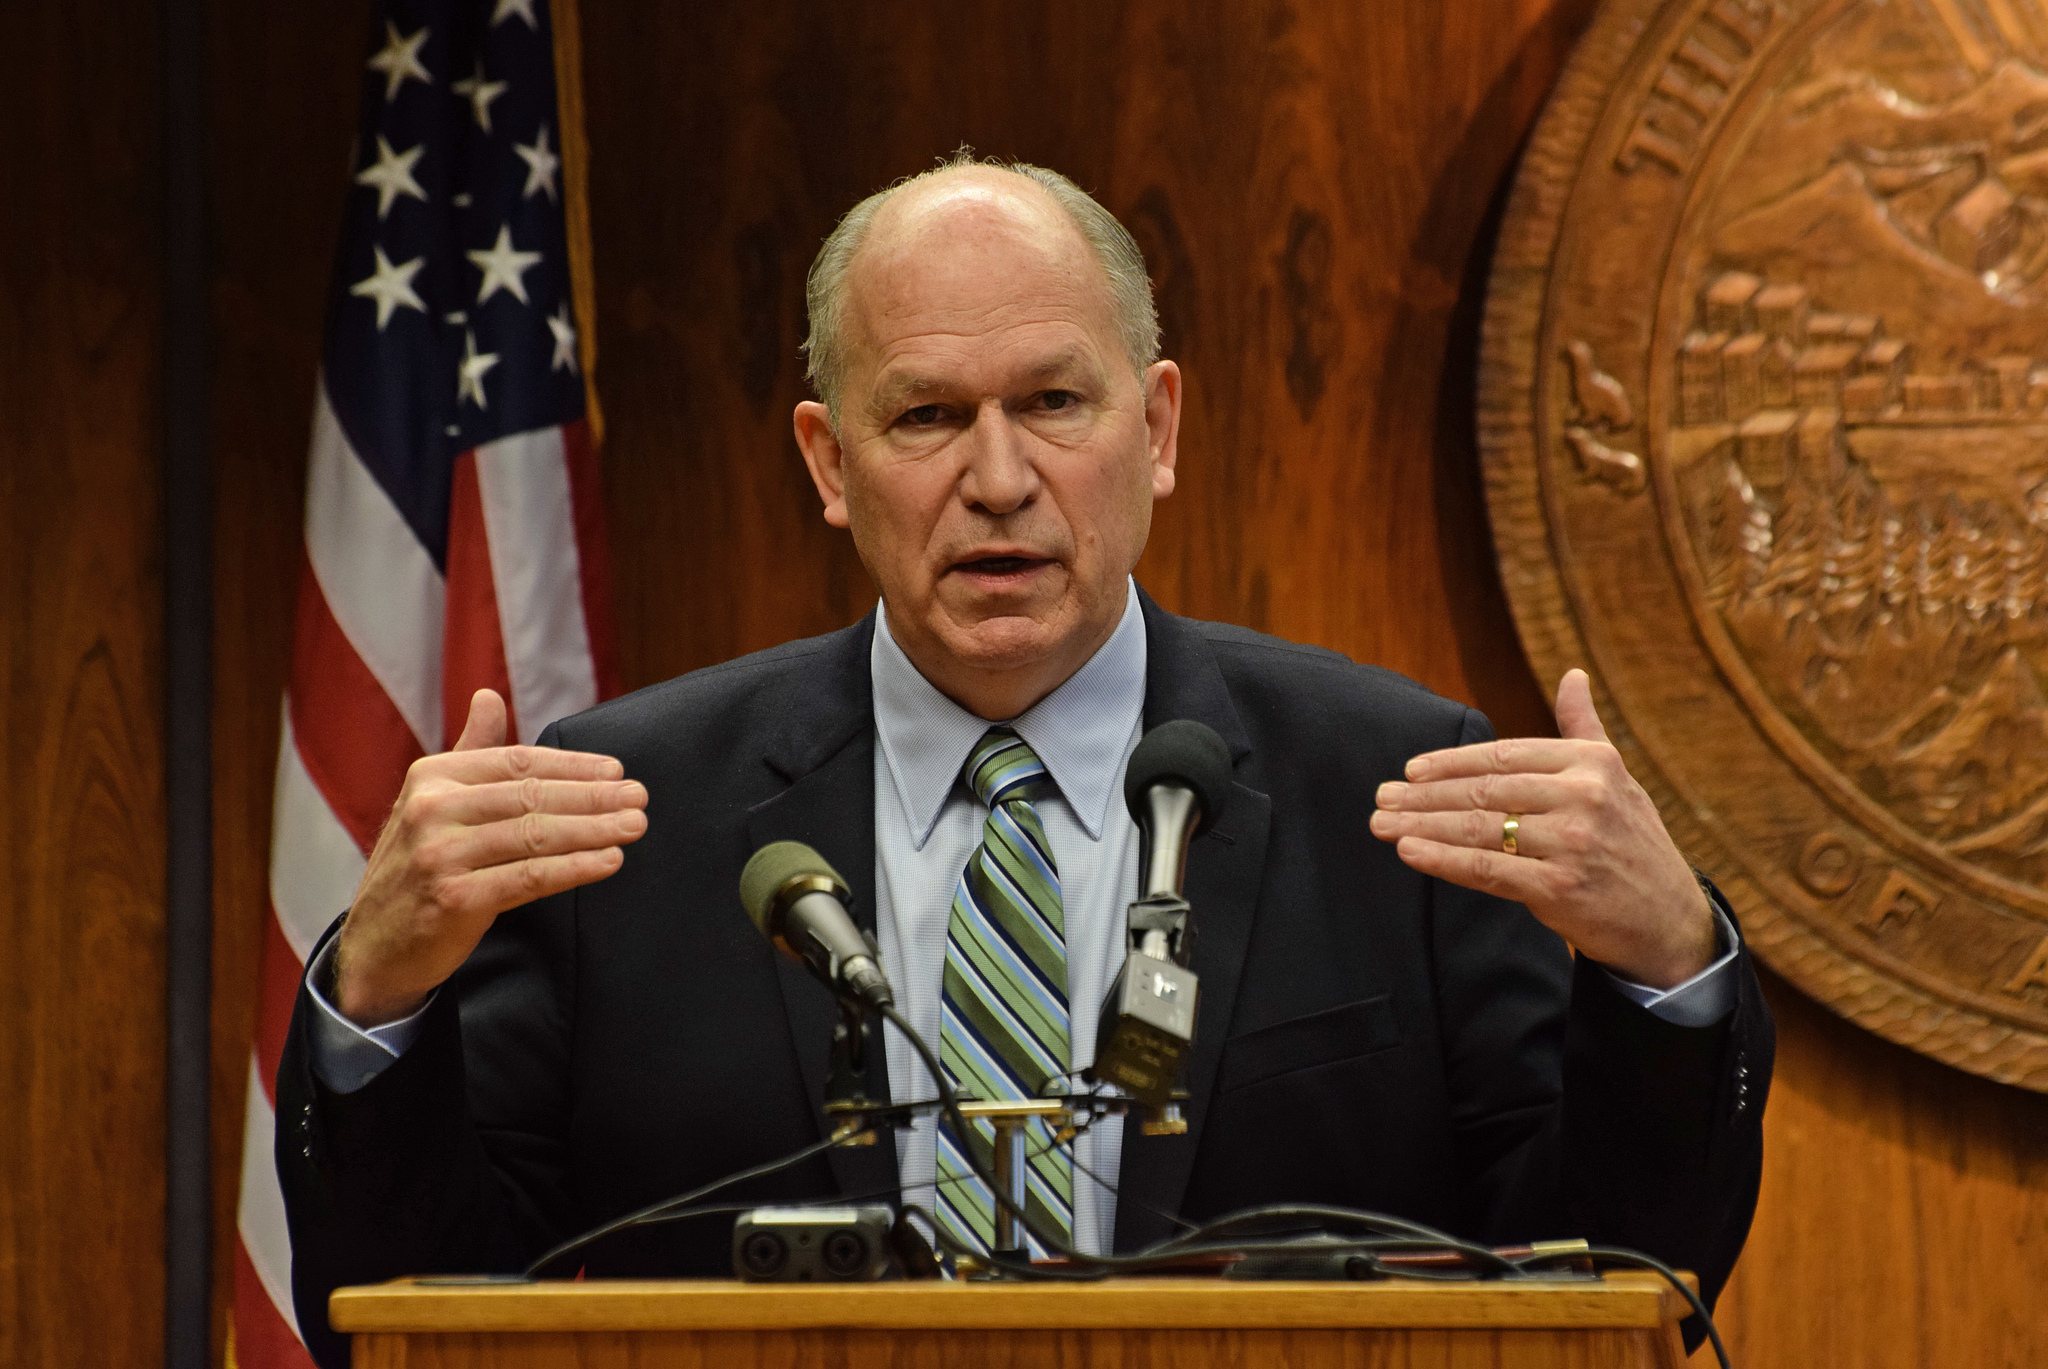 Gov. Bill Walker addresses reporters at a press conference he called to discuss cuts to his version of the state budget, Feb. 5, 2015. (Photo by Skip Gray/360 North)